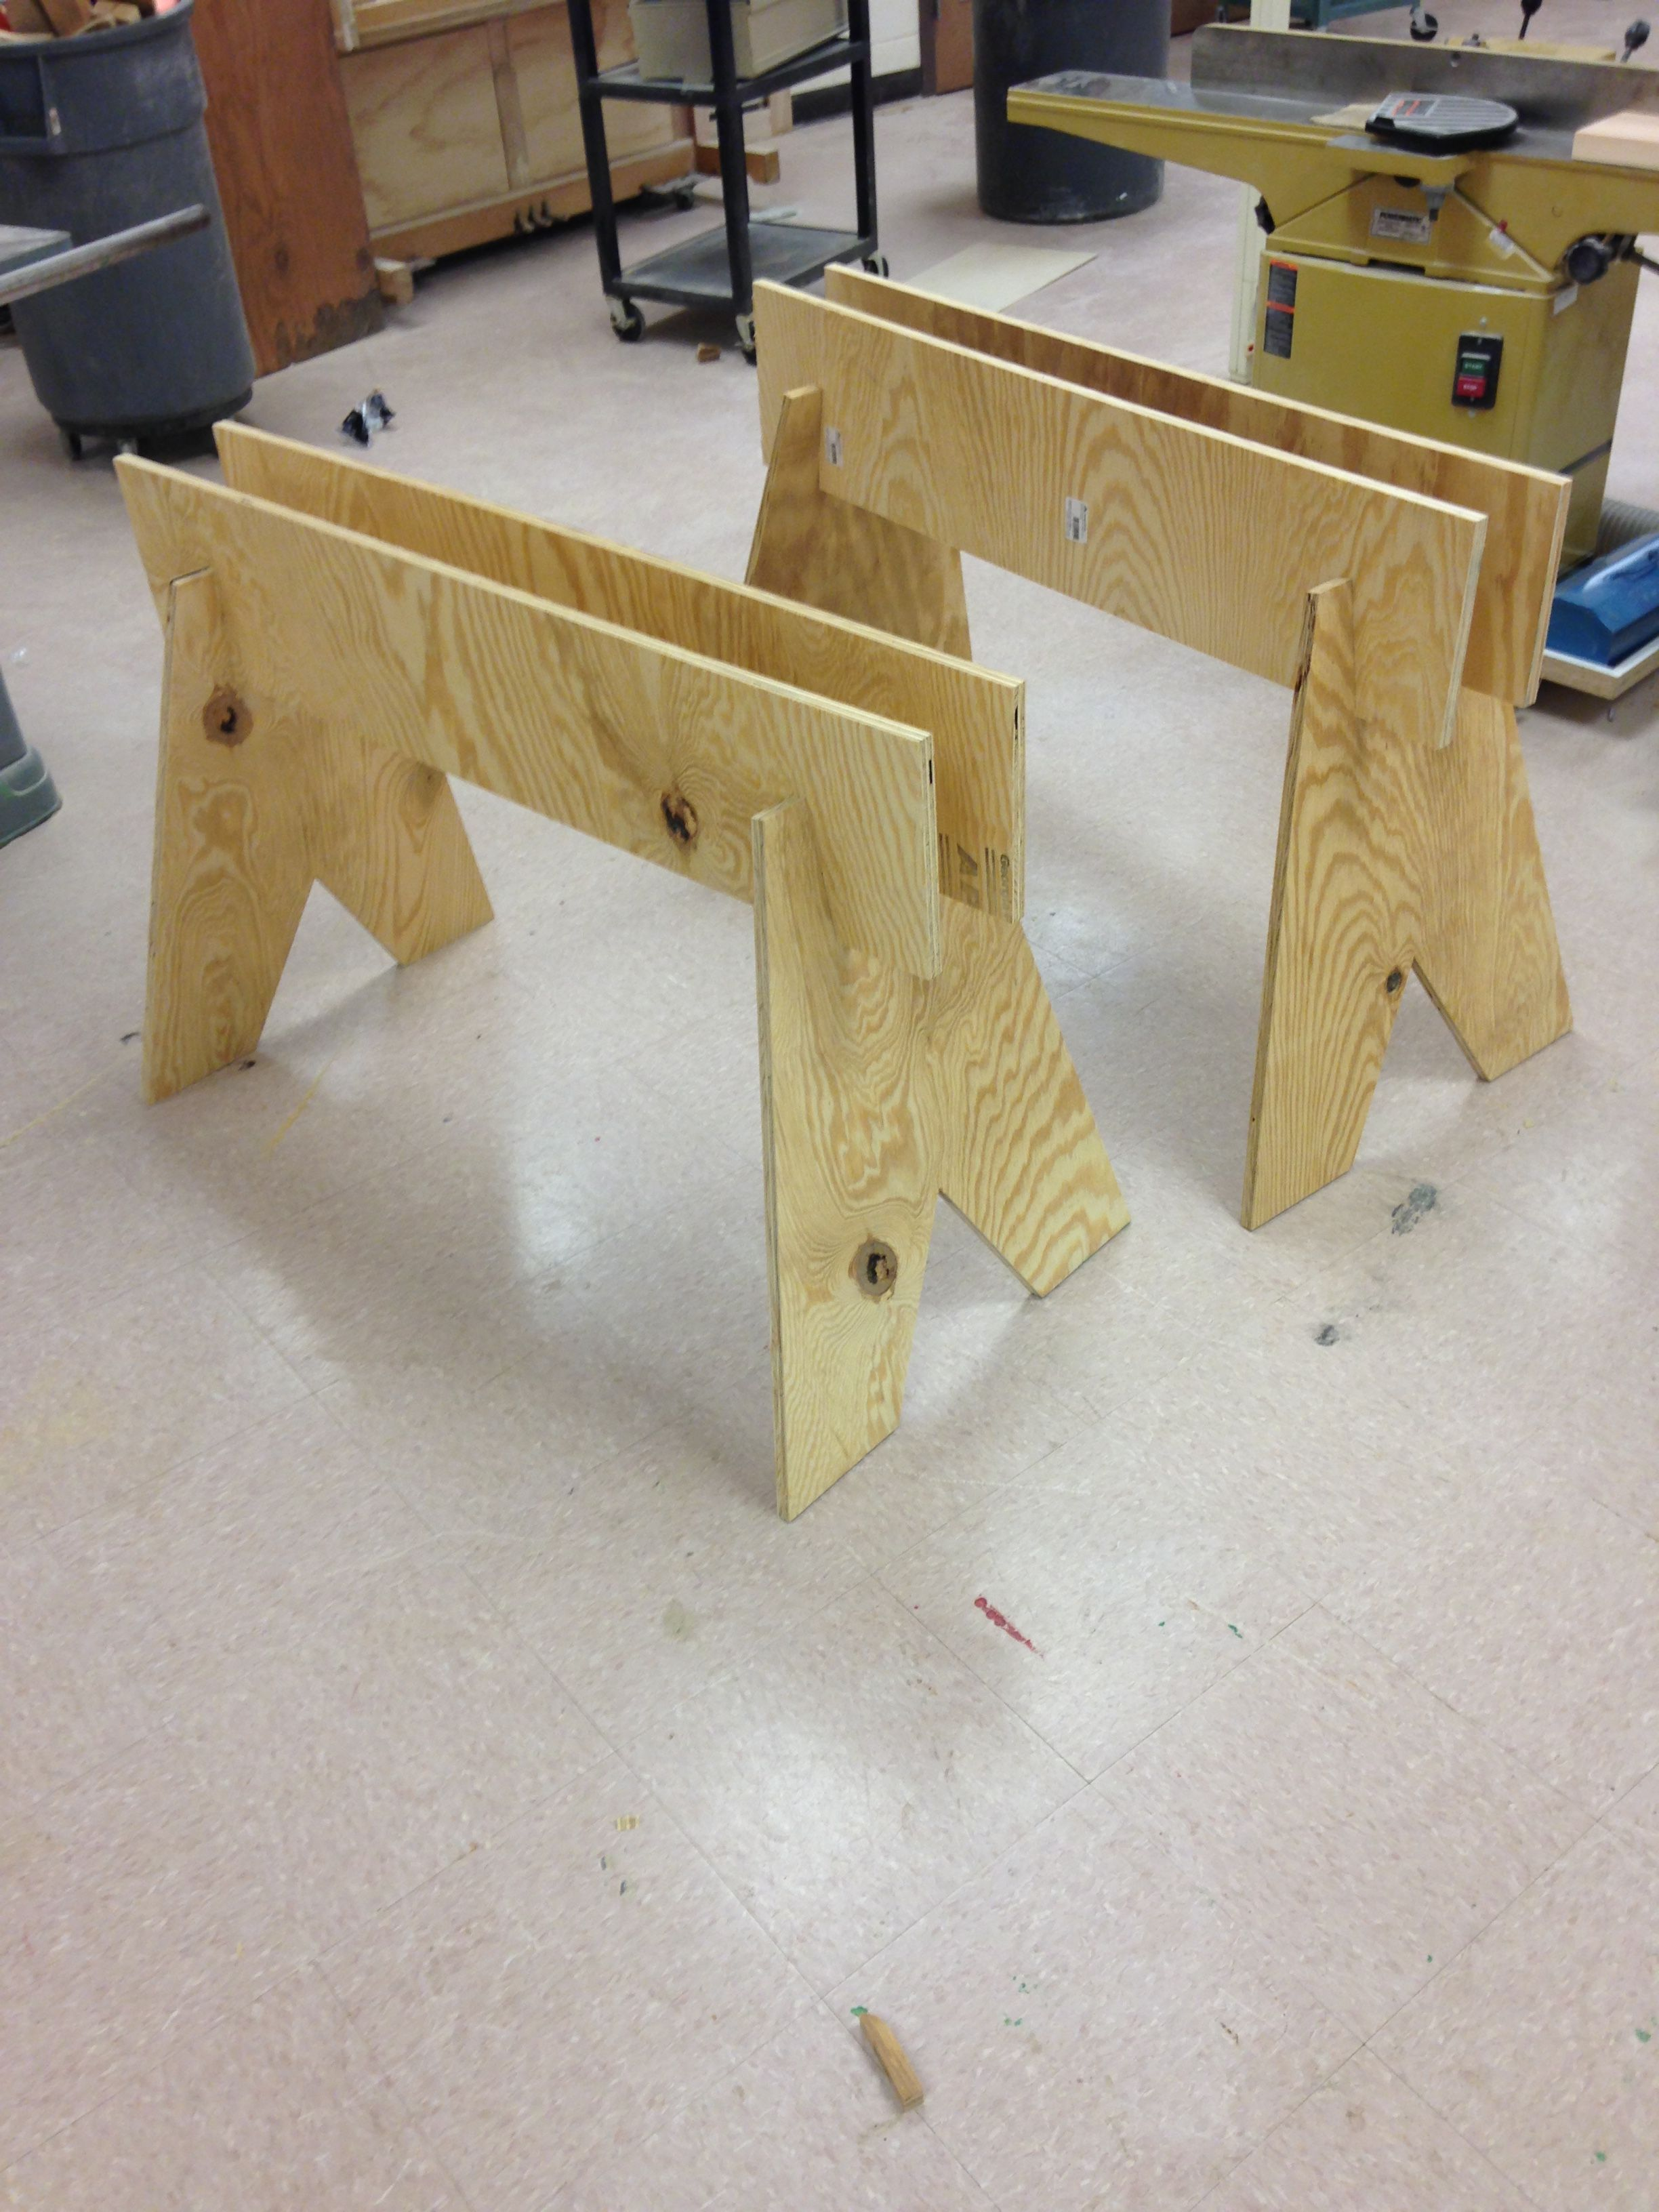 Saw Horses Made From One Sheet Of Plywood They Fold Flat And Are Very Sturdy Plywood Sheets Sawhorse Plywood